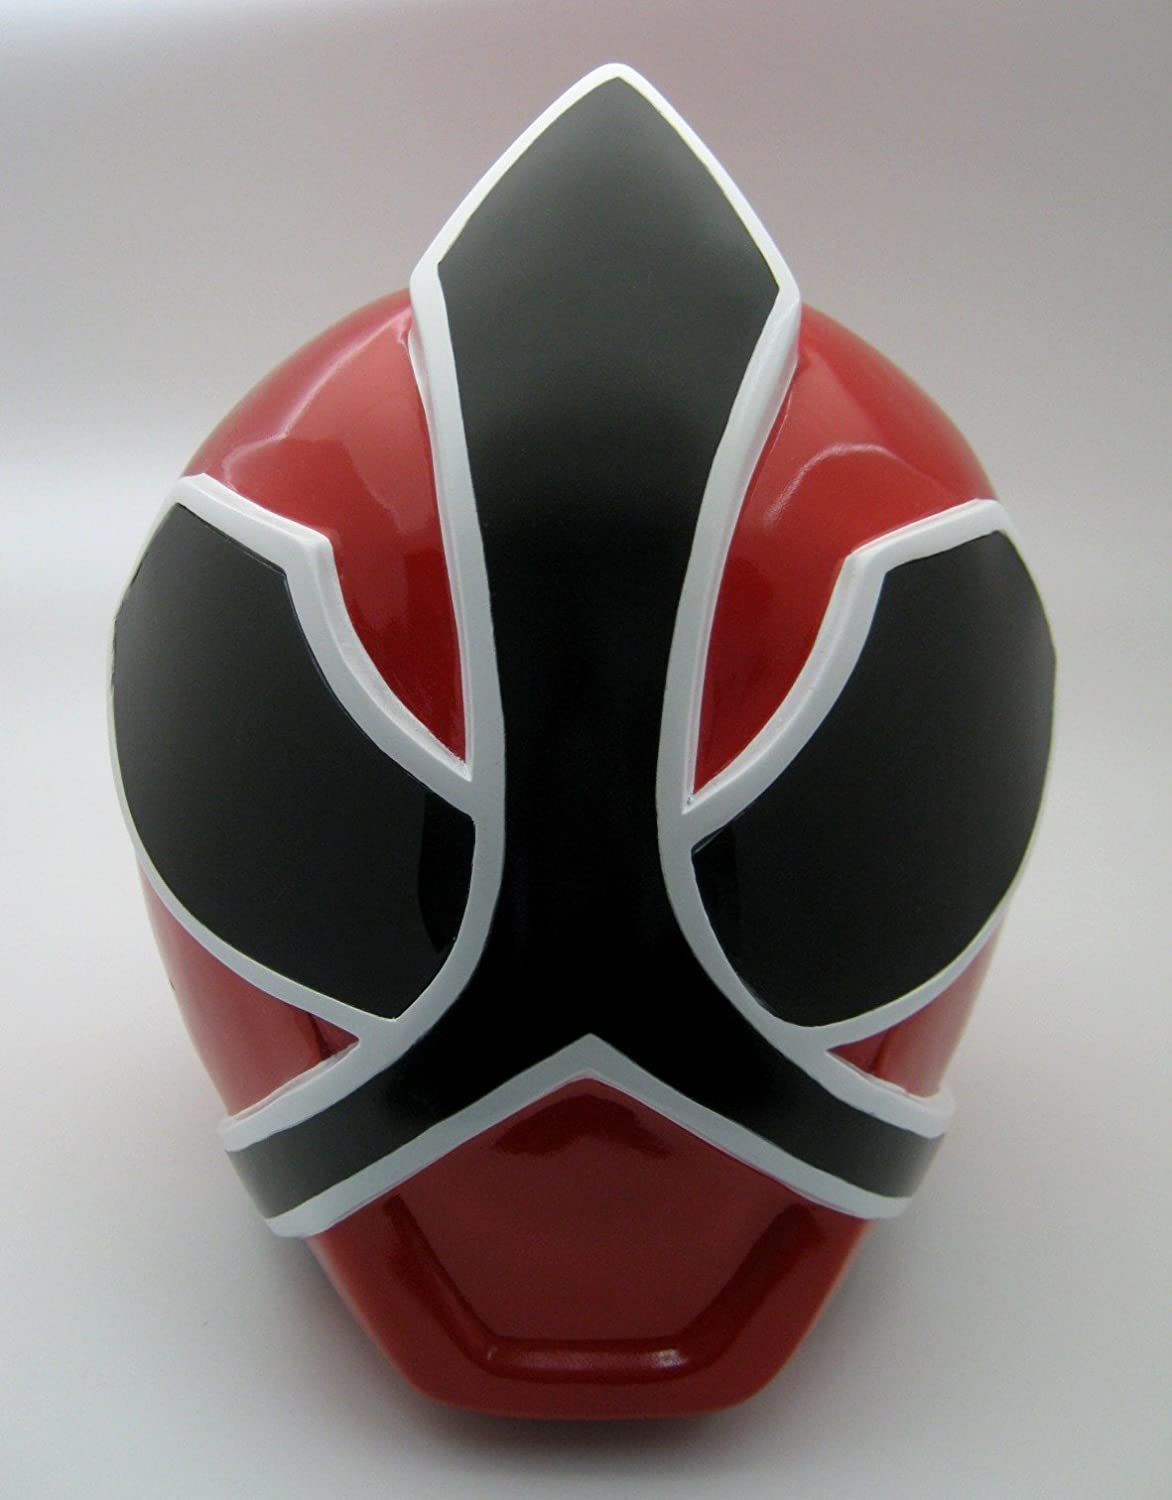 Amazon.com Mighty Morphin Red Power Rangers Samurai Cosplay Helmet 11 Toys u0026 Games & Amazon.com: Mighty Morphin Red Power Rangers Samurai Cosplay Helmet ...